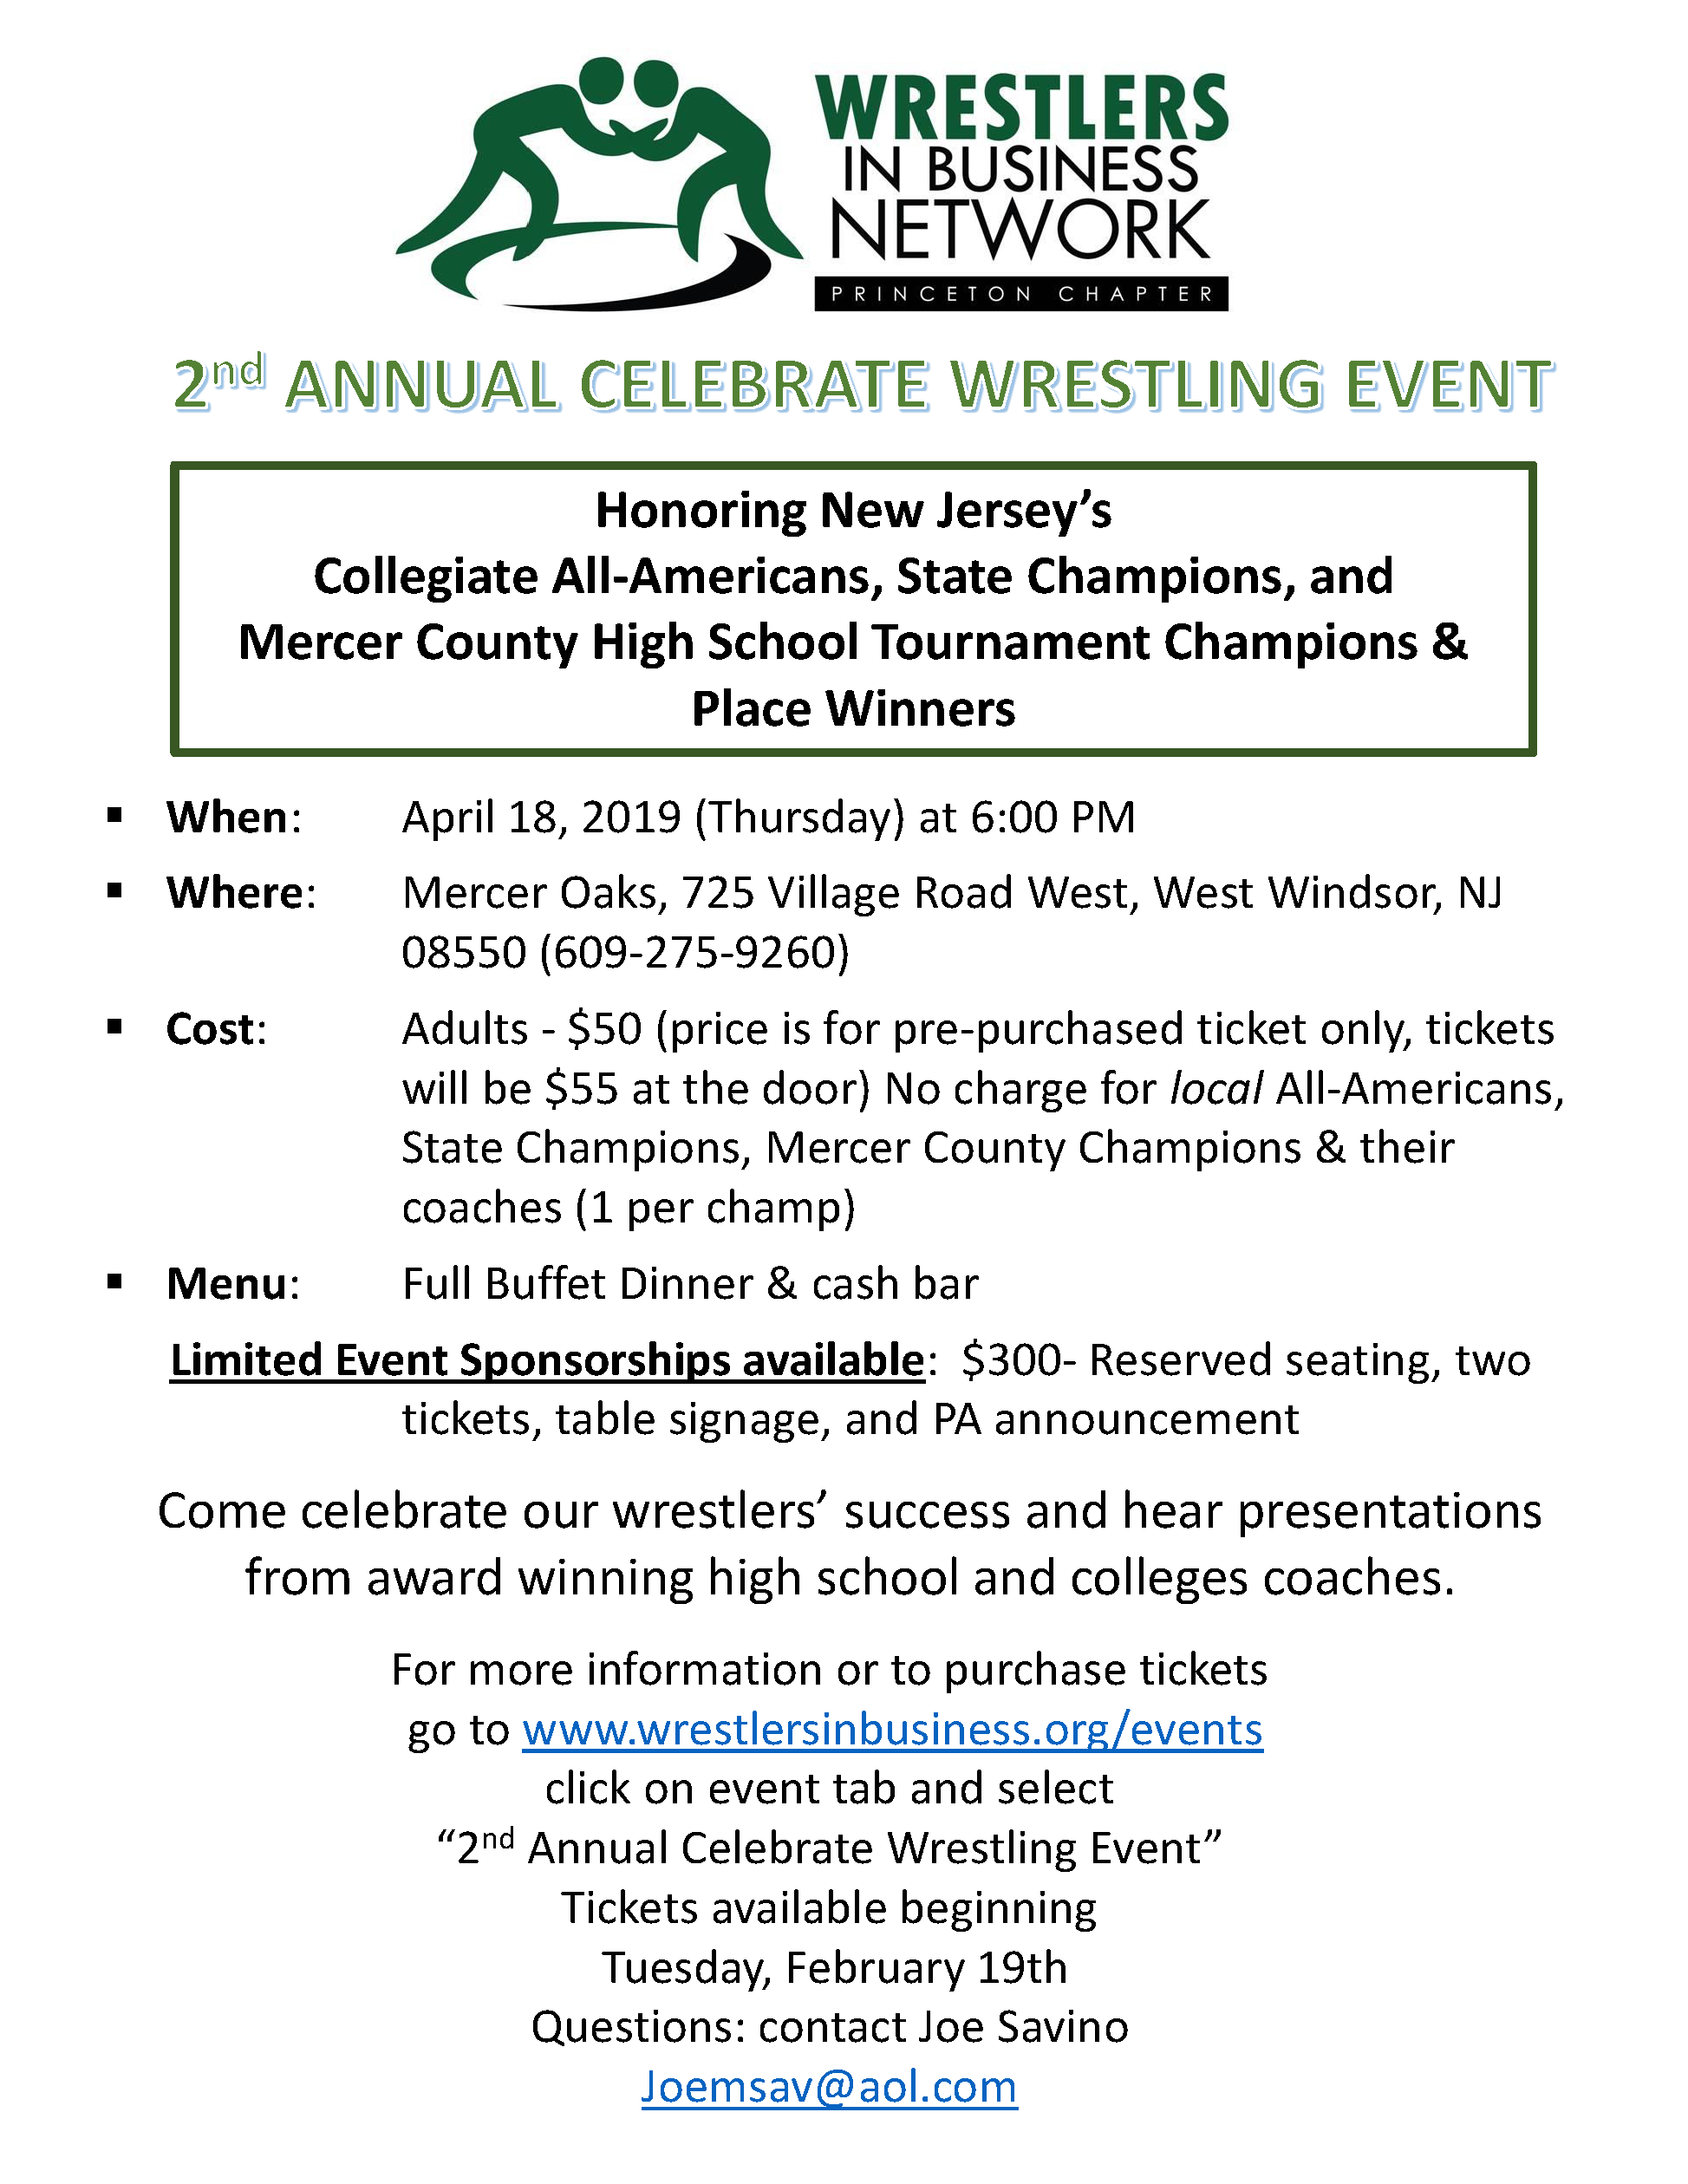 2019 2nd Annual Celebrate Wrestling Event.png